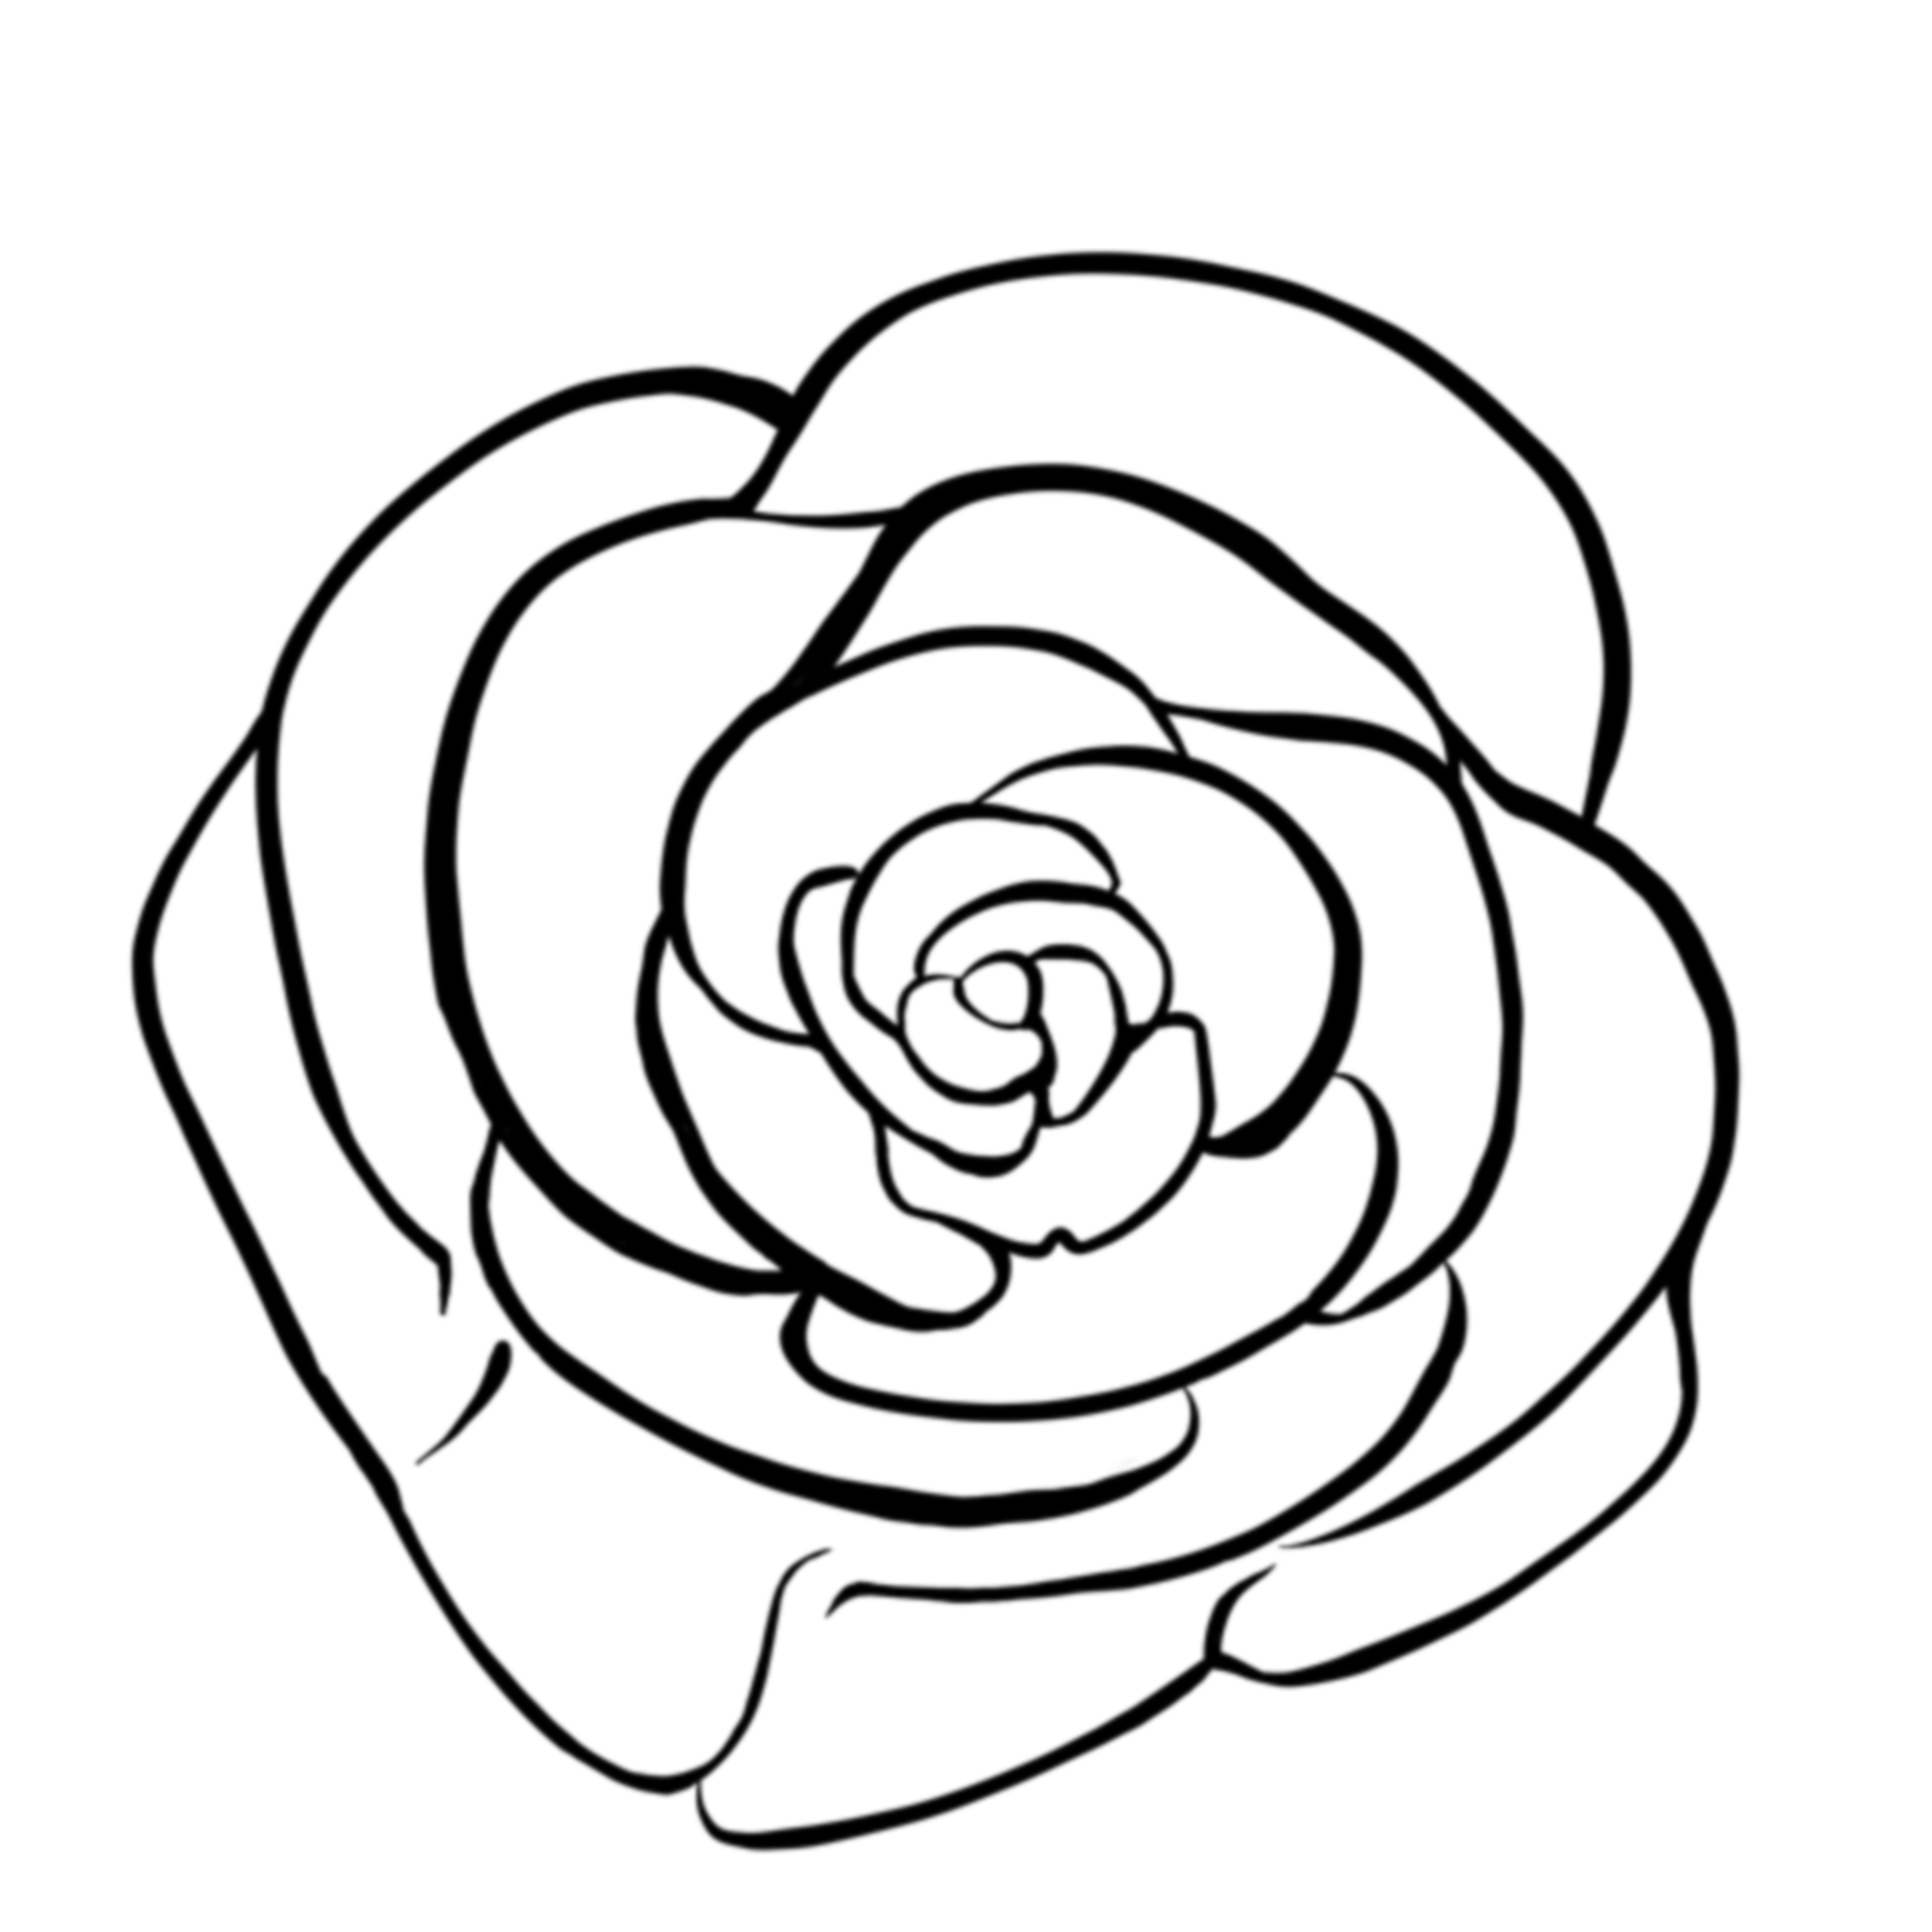 RoseCommissionOutline